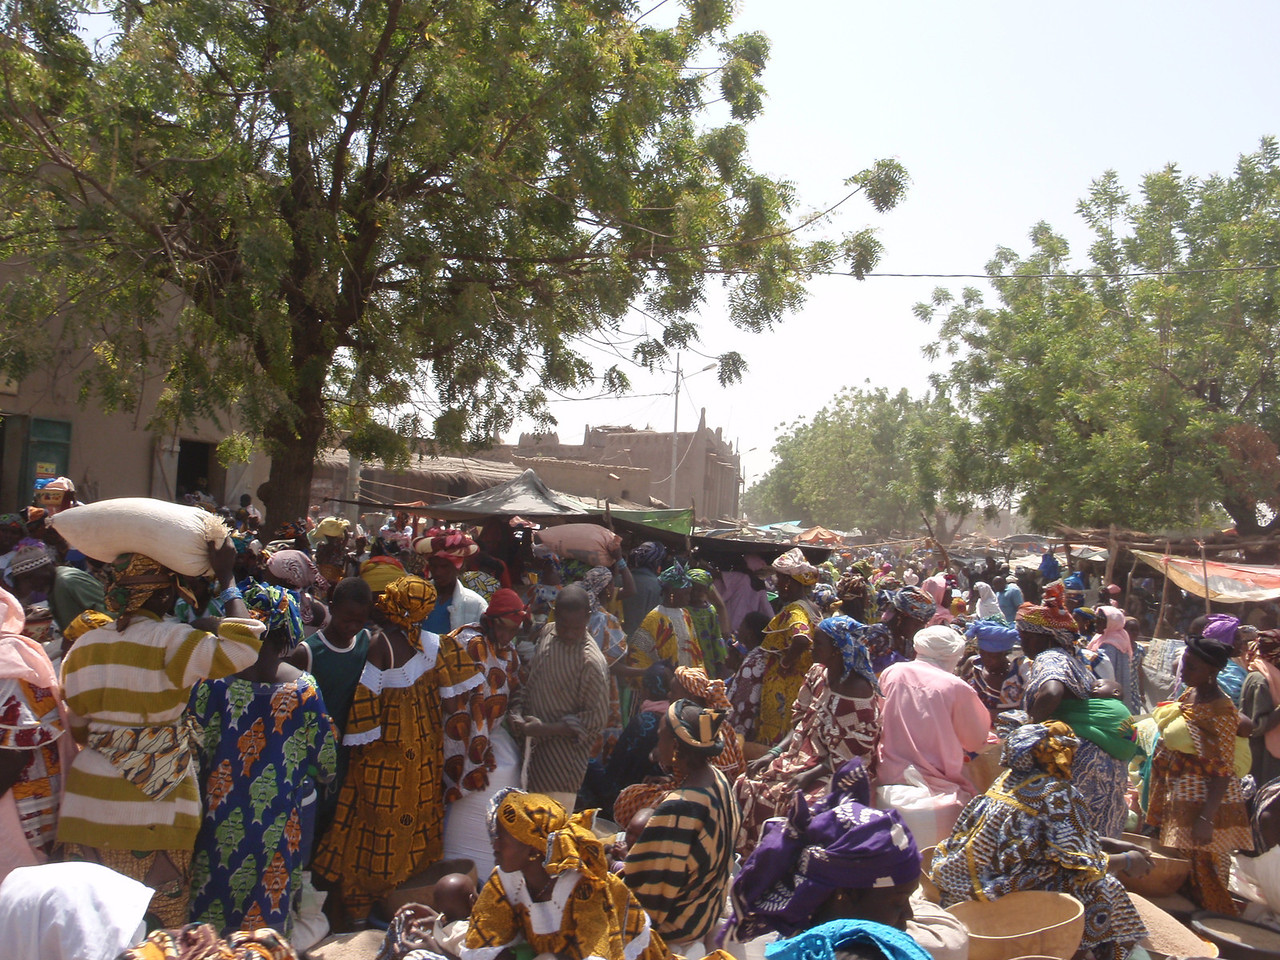 152_Djenne Old Town  The Bustling and Colourful Monday Market